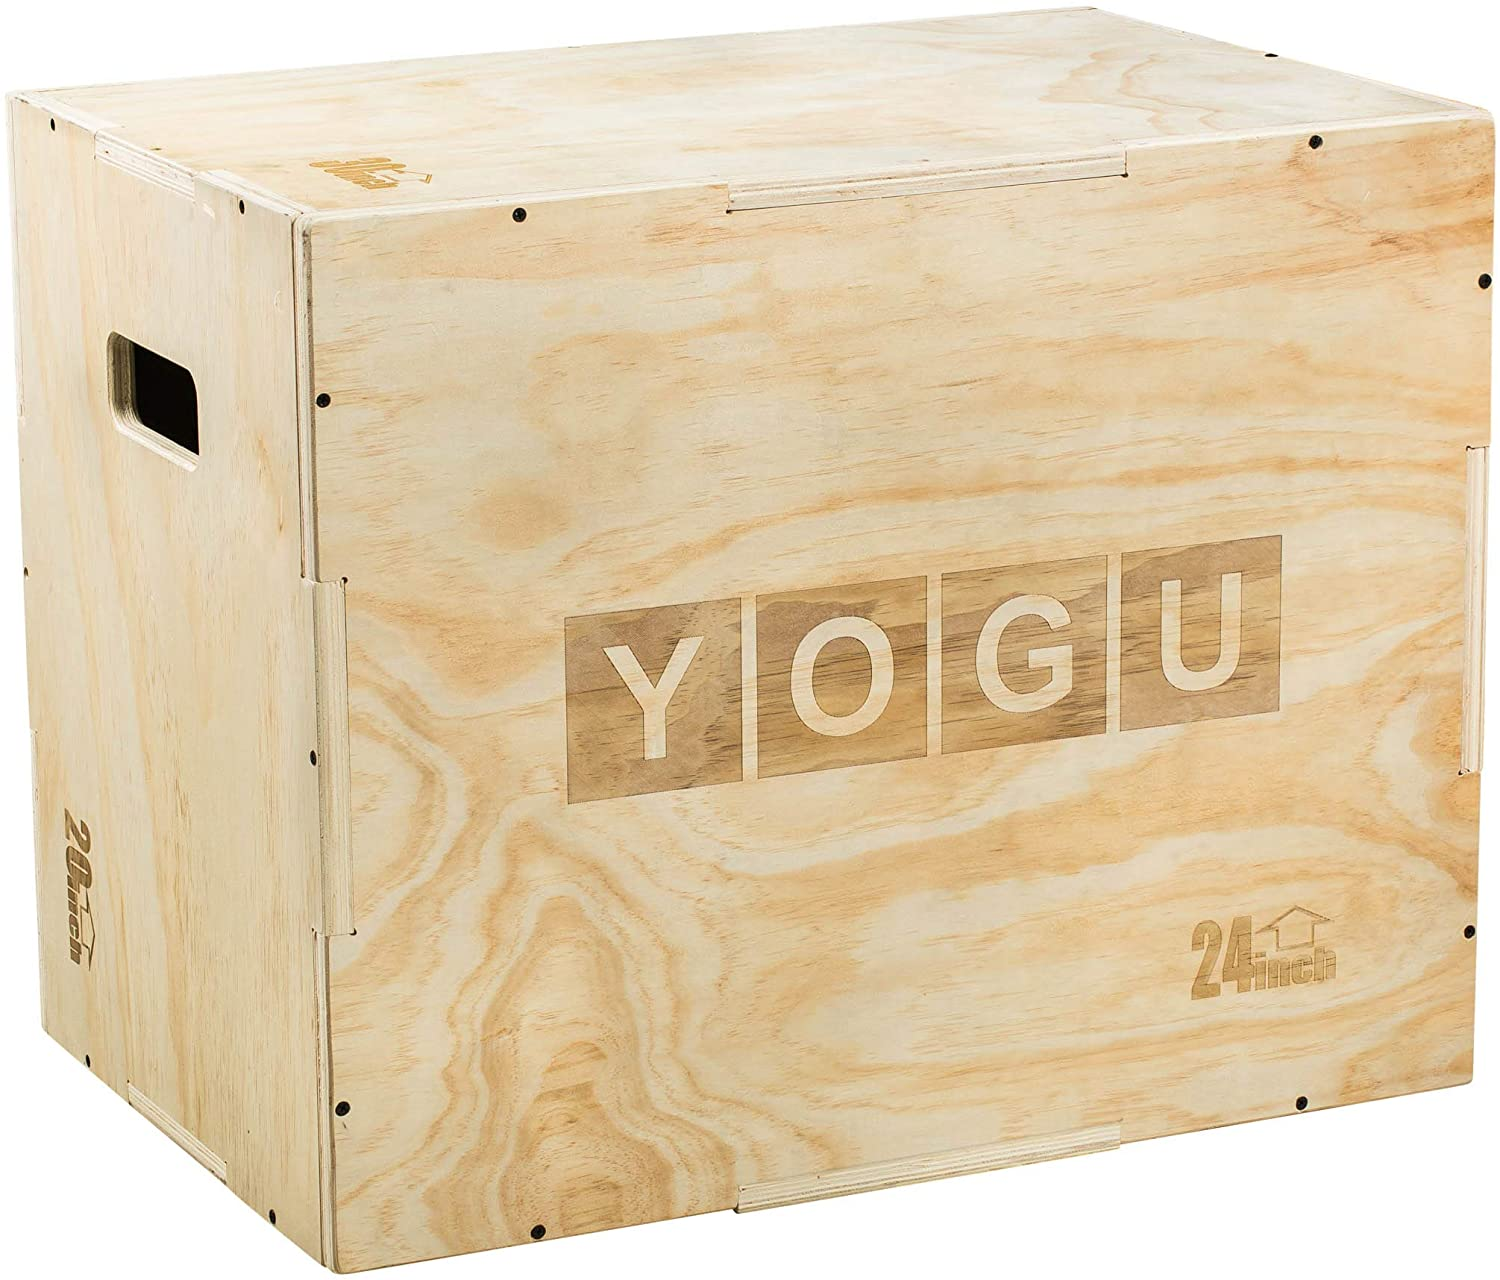 3 in 1 Wood Plyo Box with 4 Different Sizes (16/14/12 – 20/18/16 – 24/20/16 – 30/24/20)-Box Jump for Plyometrics Training, Cardio Exercises or Jump Training- Pre-drilled for Easy Assembling